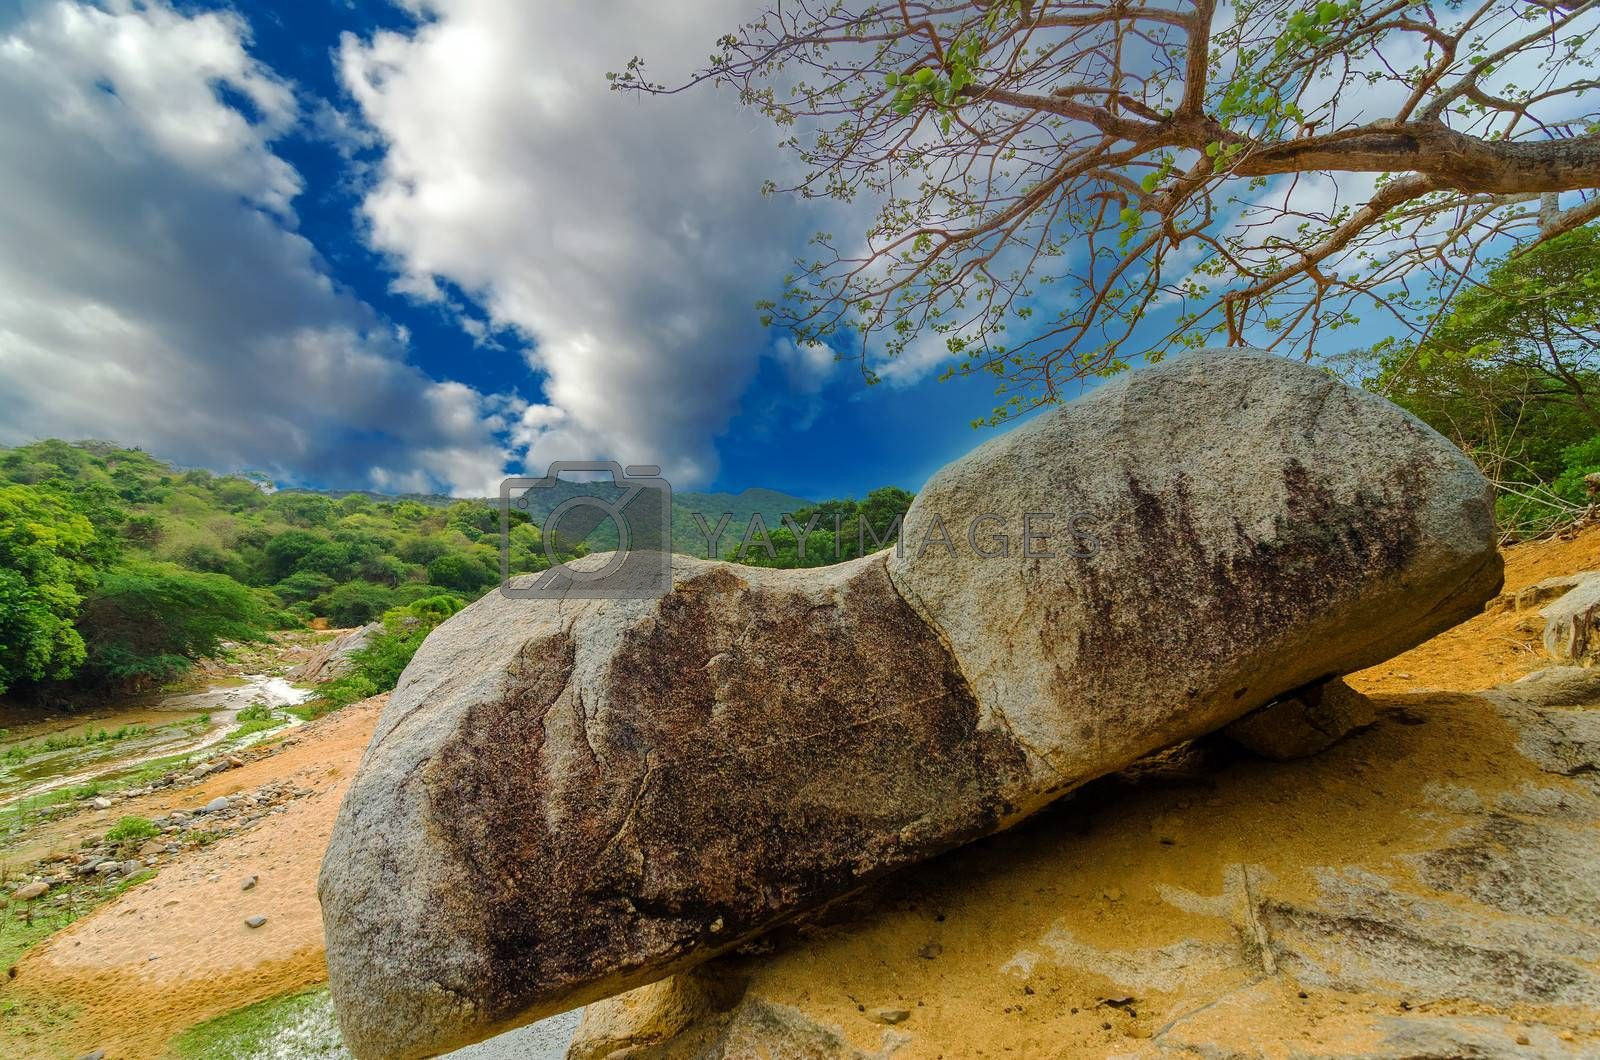 View of boulder that is important in Wayuu indigenous mythology in La Guajira, Colombia